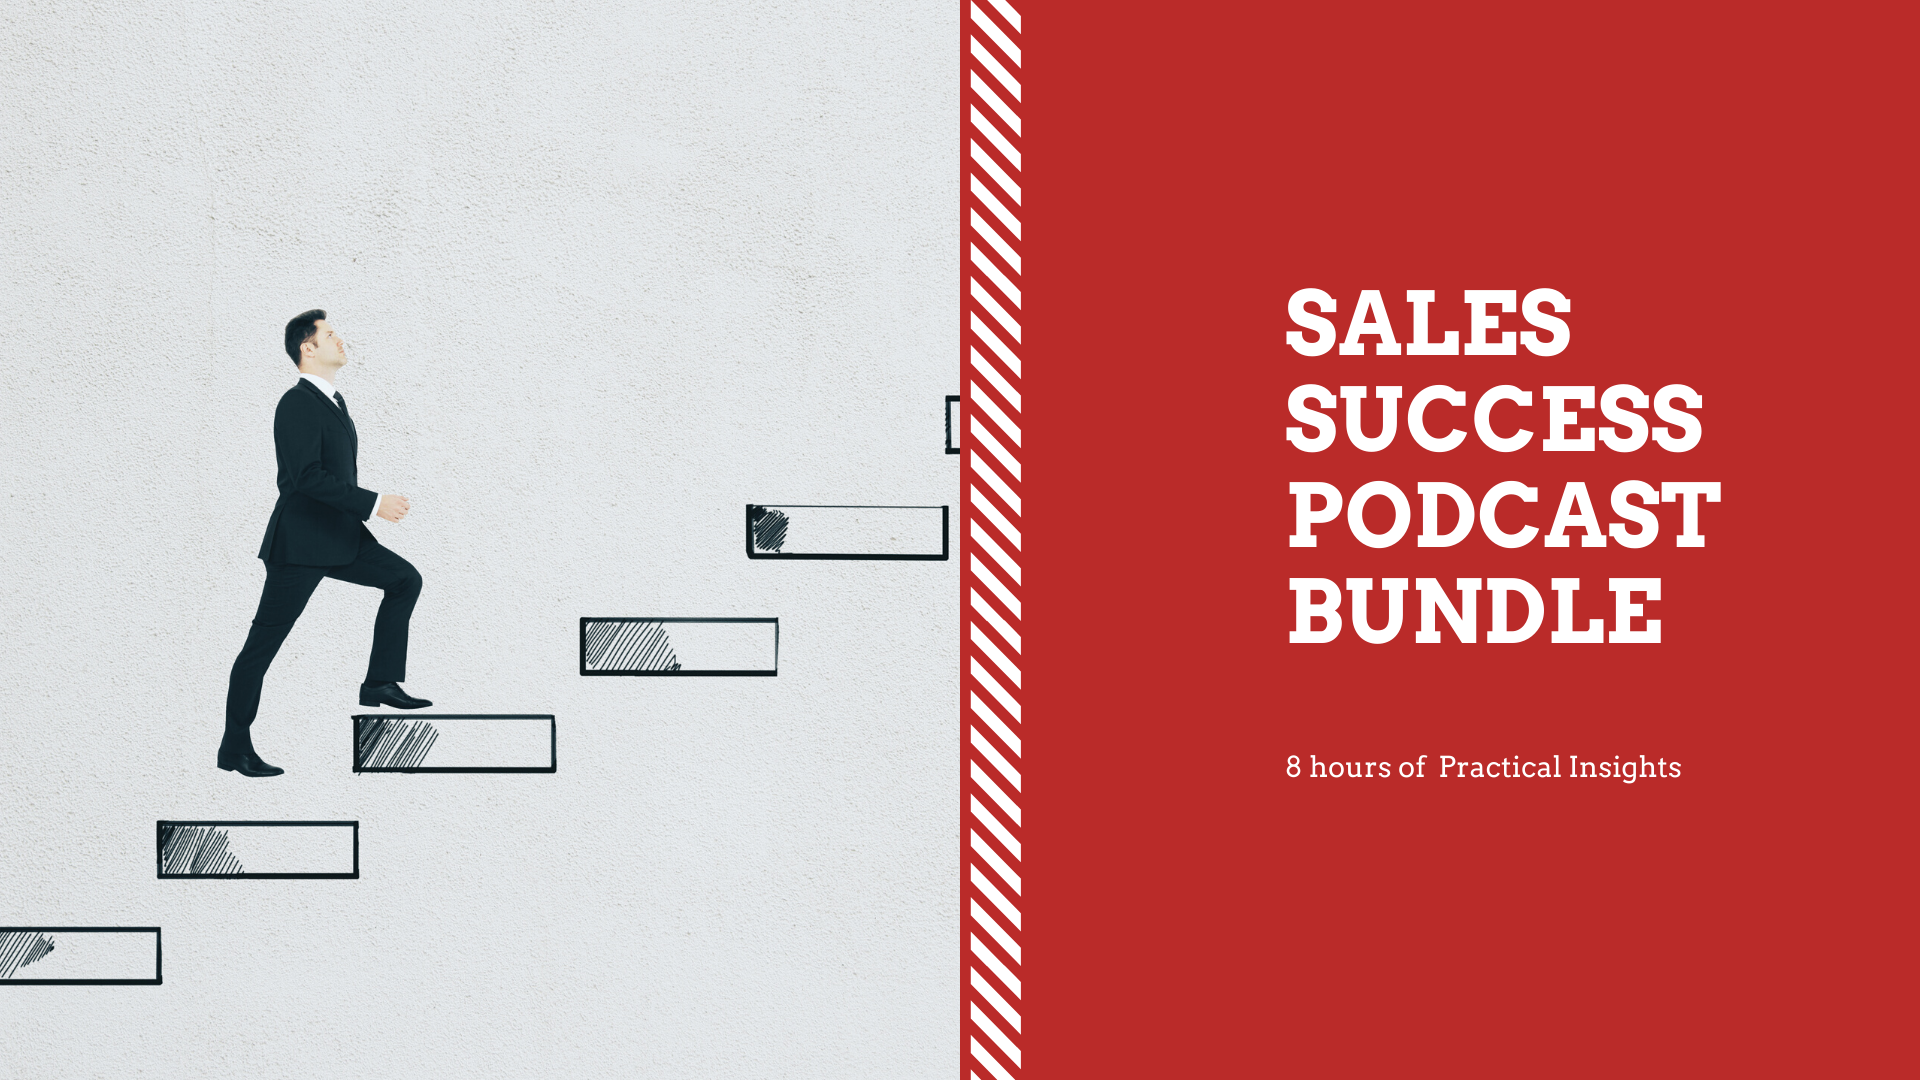 Sales Success Podcast Bundle